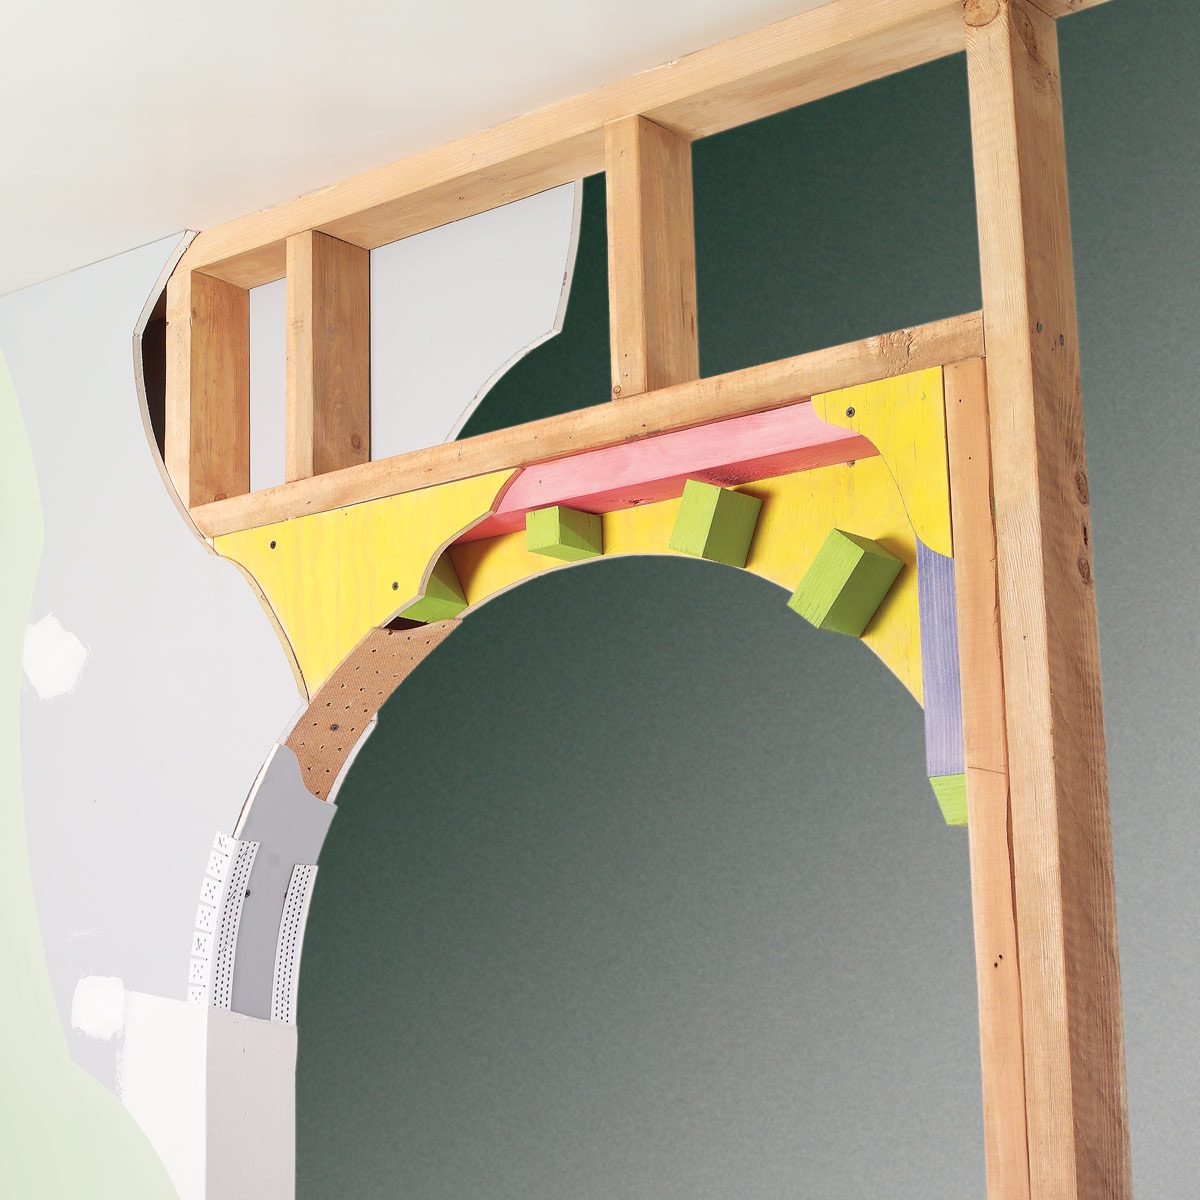 How To Prepare Wood Trim For A Smooth Wood Paint Job: How To Build A Drywall Arch